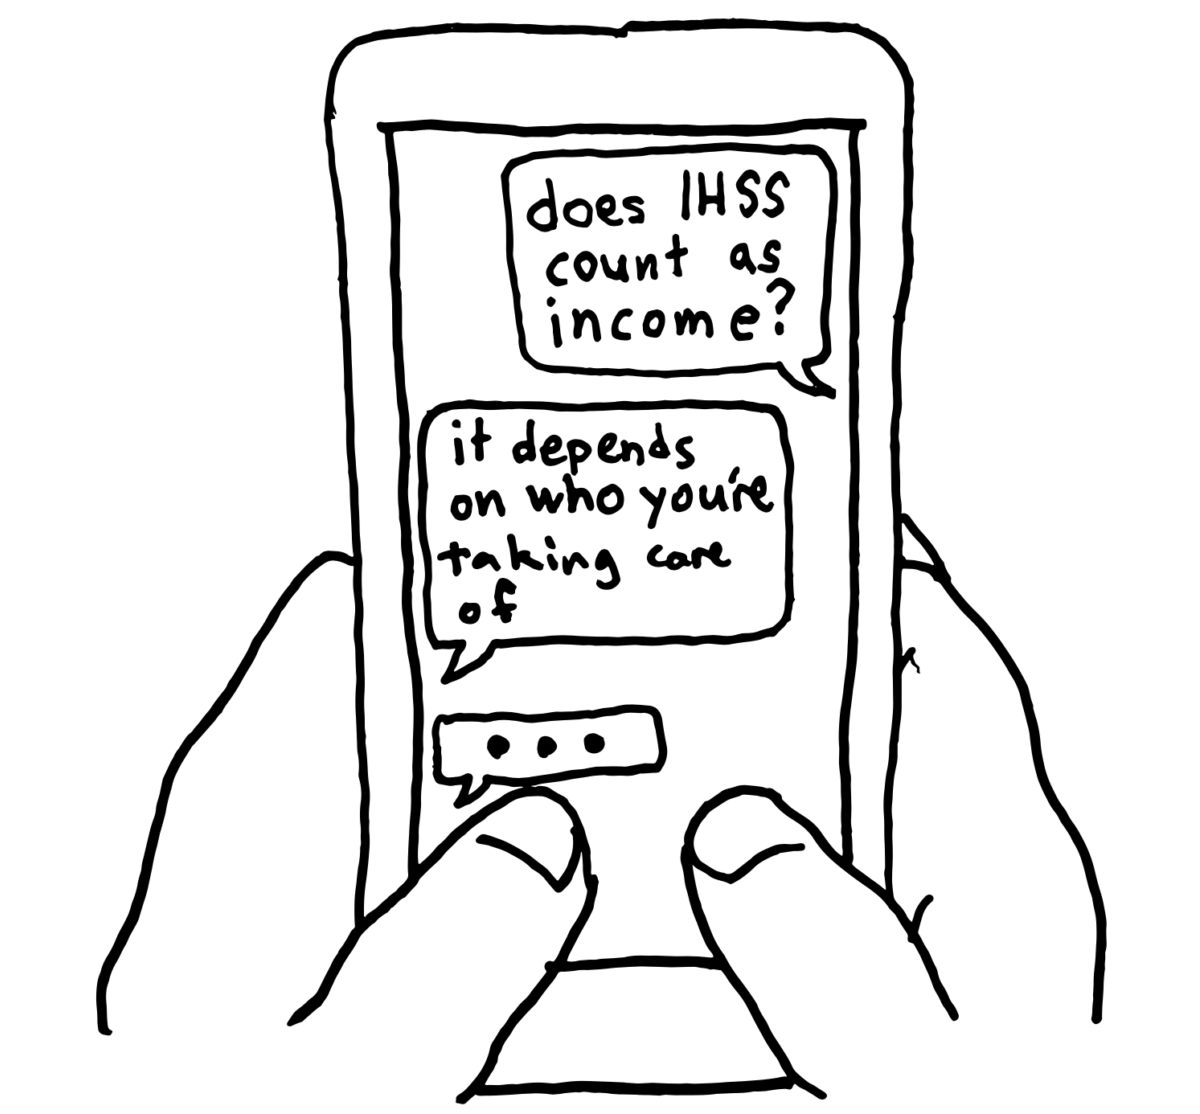 Sketch of a chat conversation between a tax filer and tax assister via text